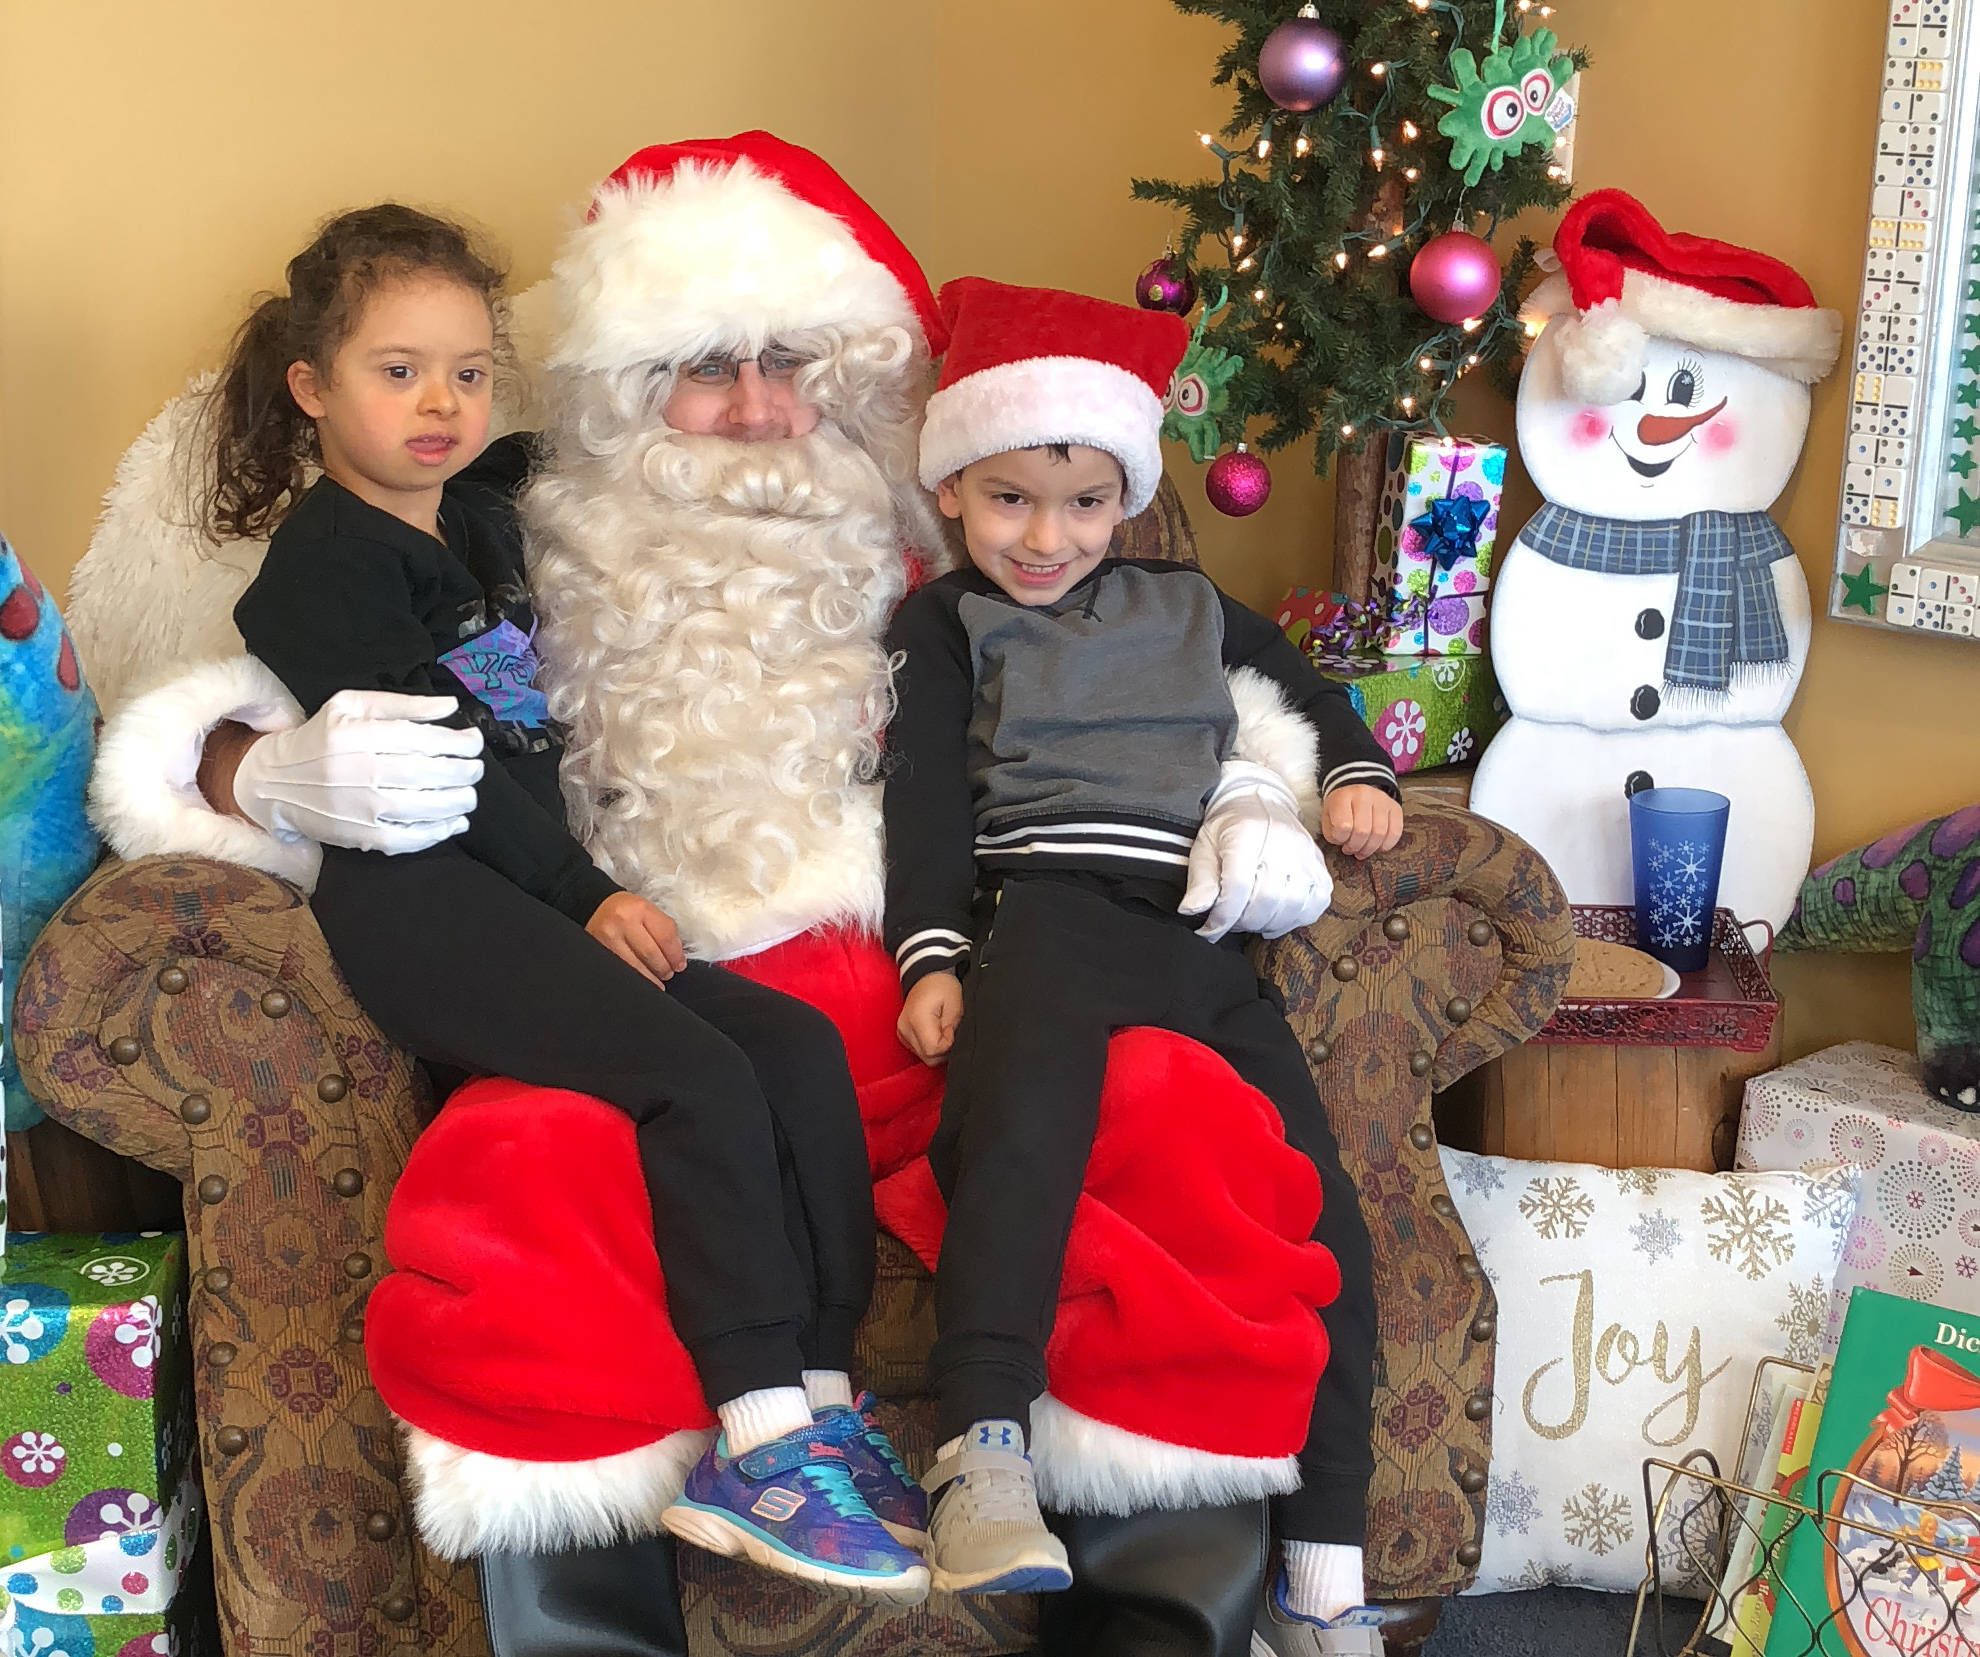 Two children sitting on Santa's lap during a Sensory Friendly Play event at the Children's Museum.